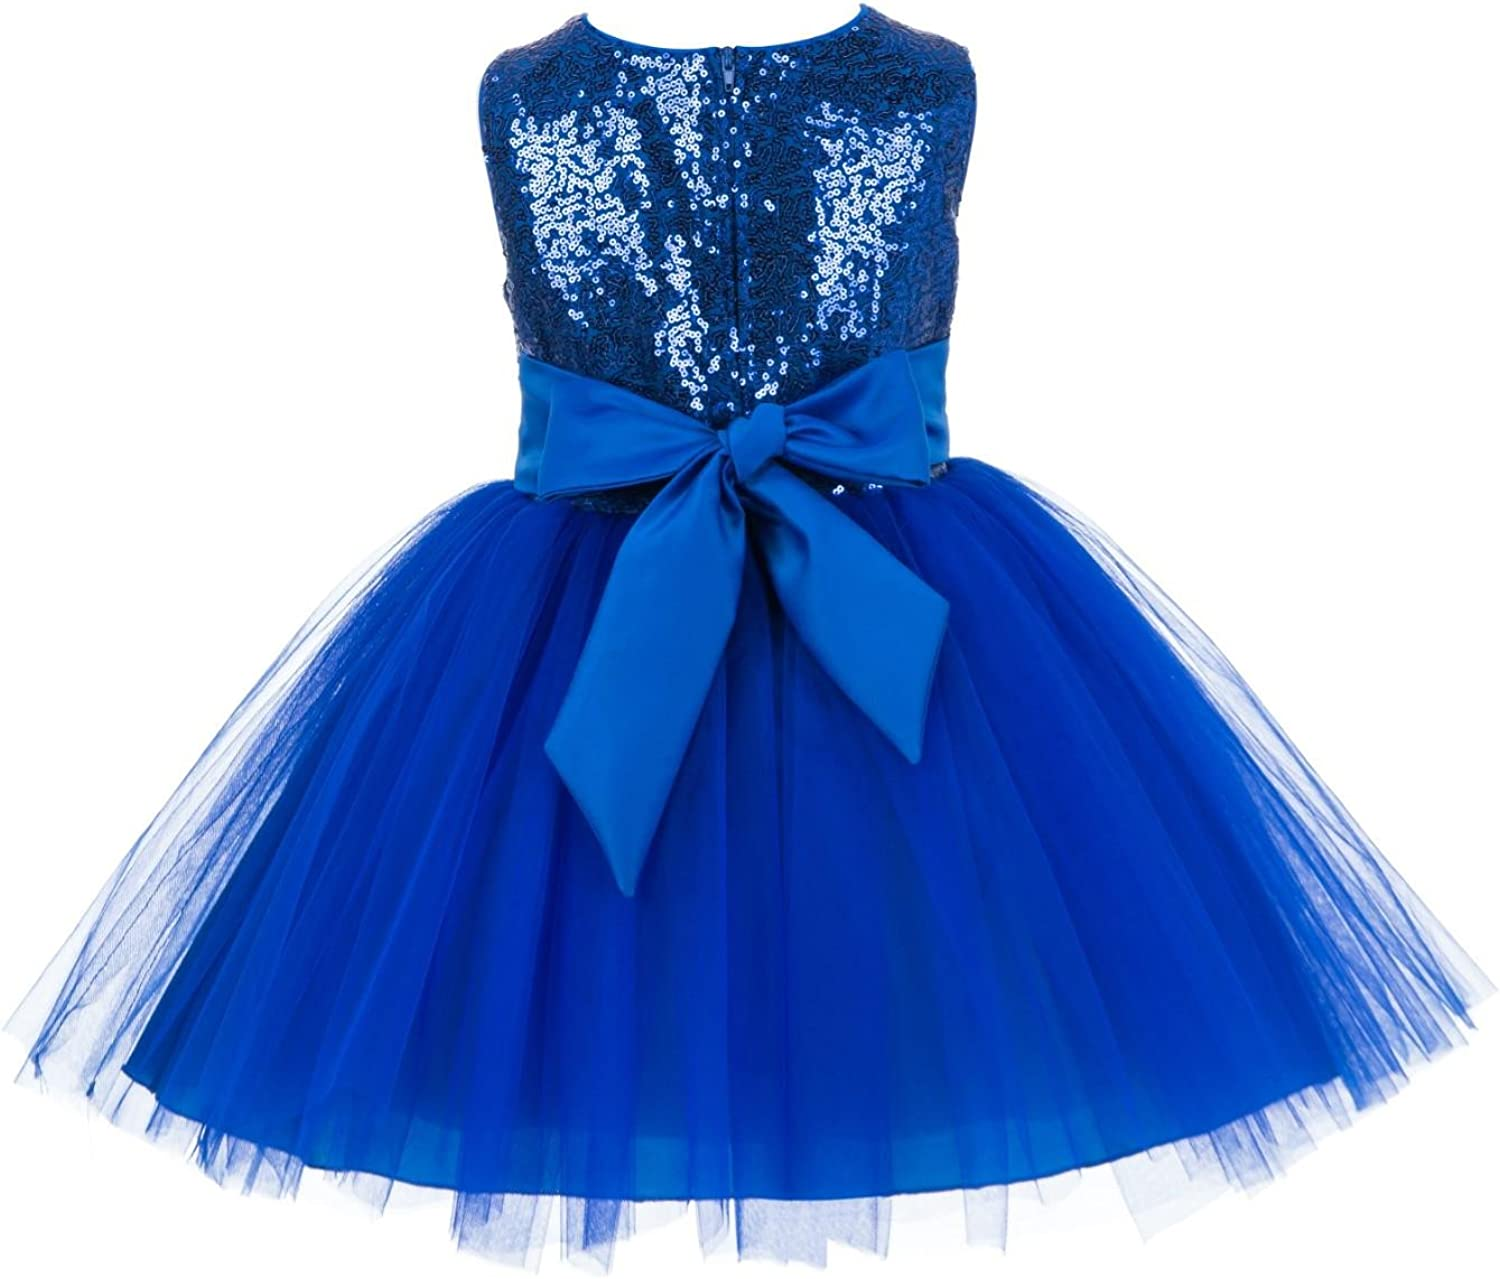 Wedding Pageant Sparkling Sequins Mesh Flower Girl Dress Tulle Toddler Holiday Gown Occasions 124